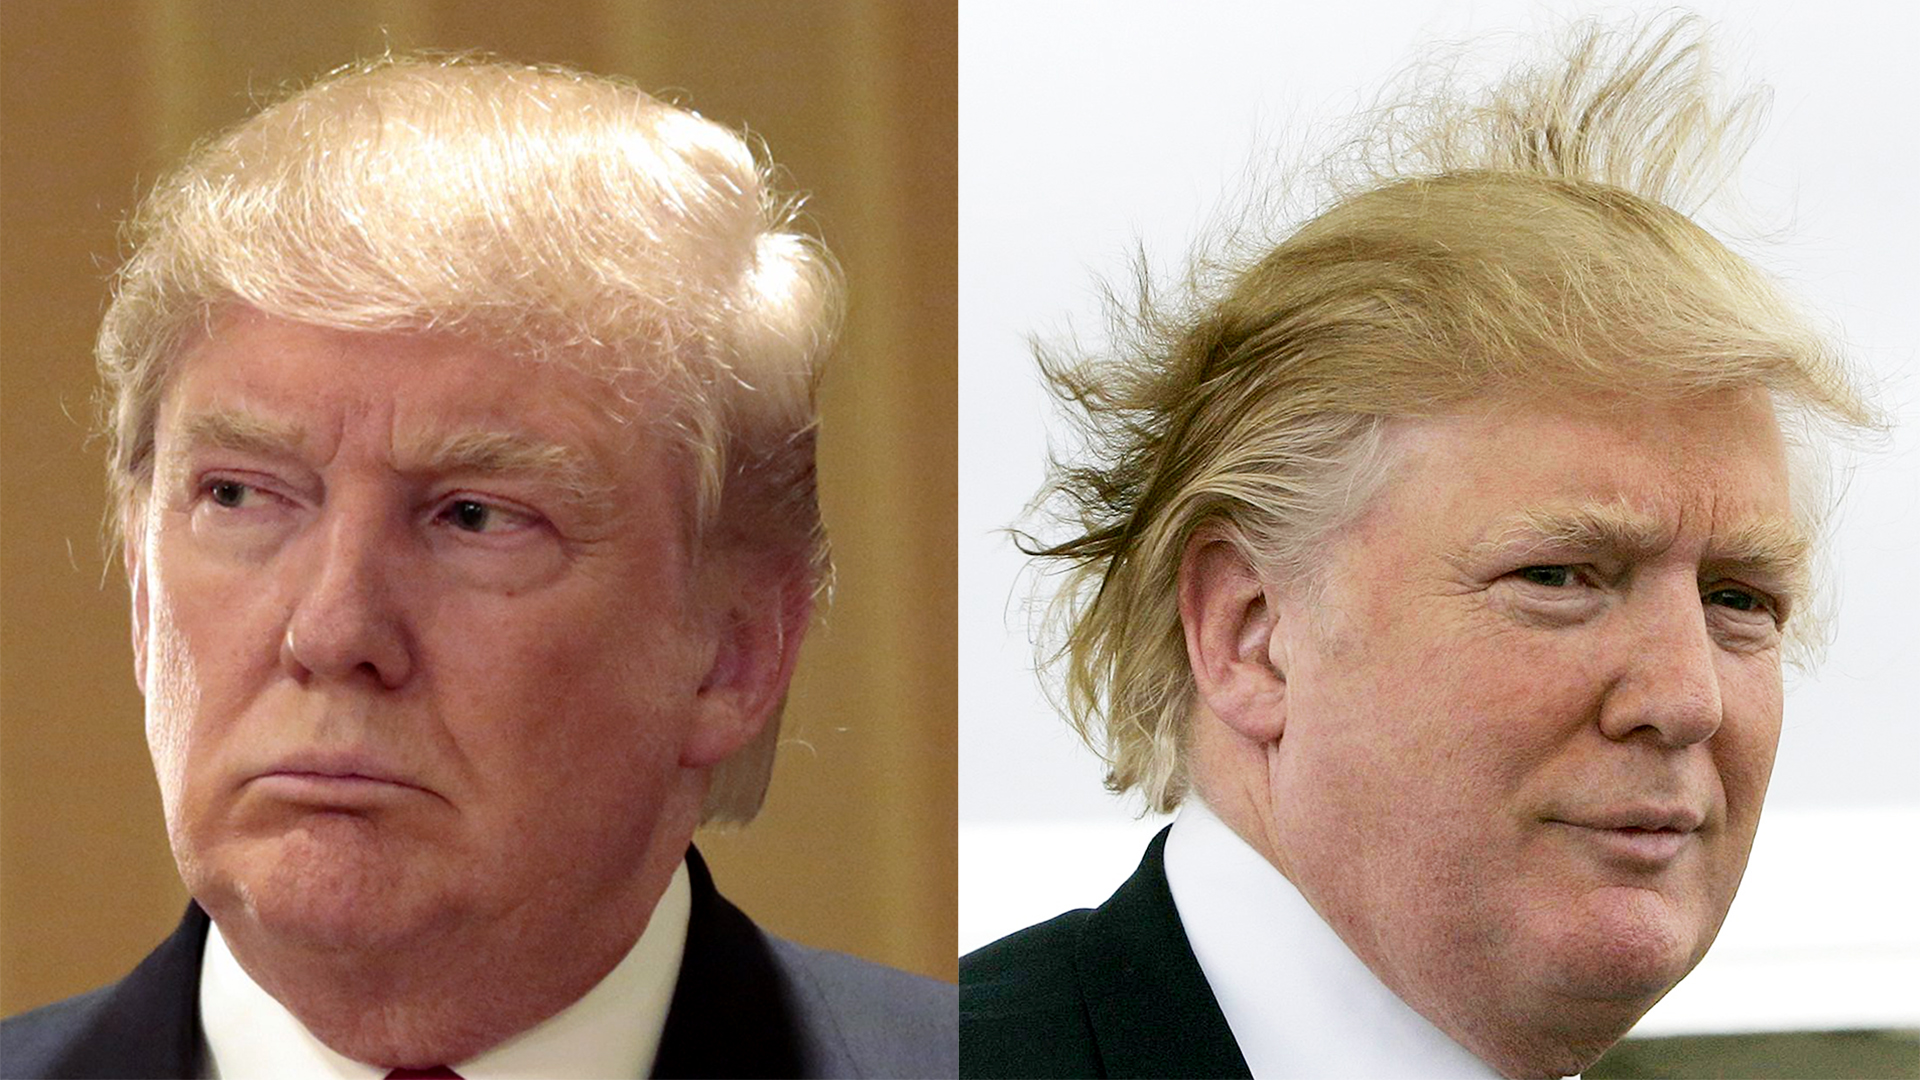 Donald Trump's hair: Defended and explained in his own ...